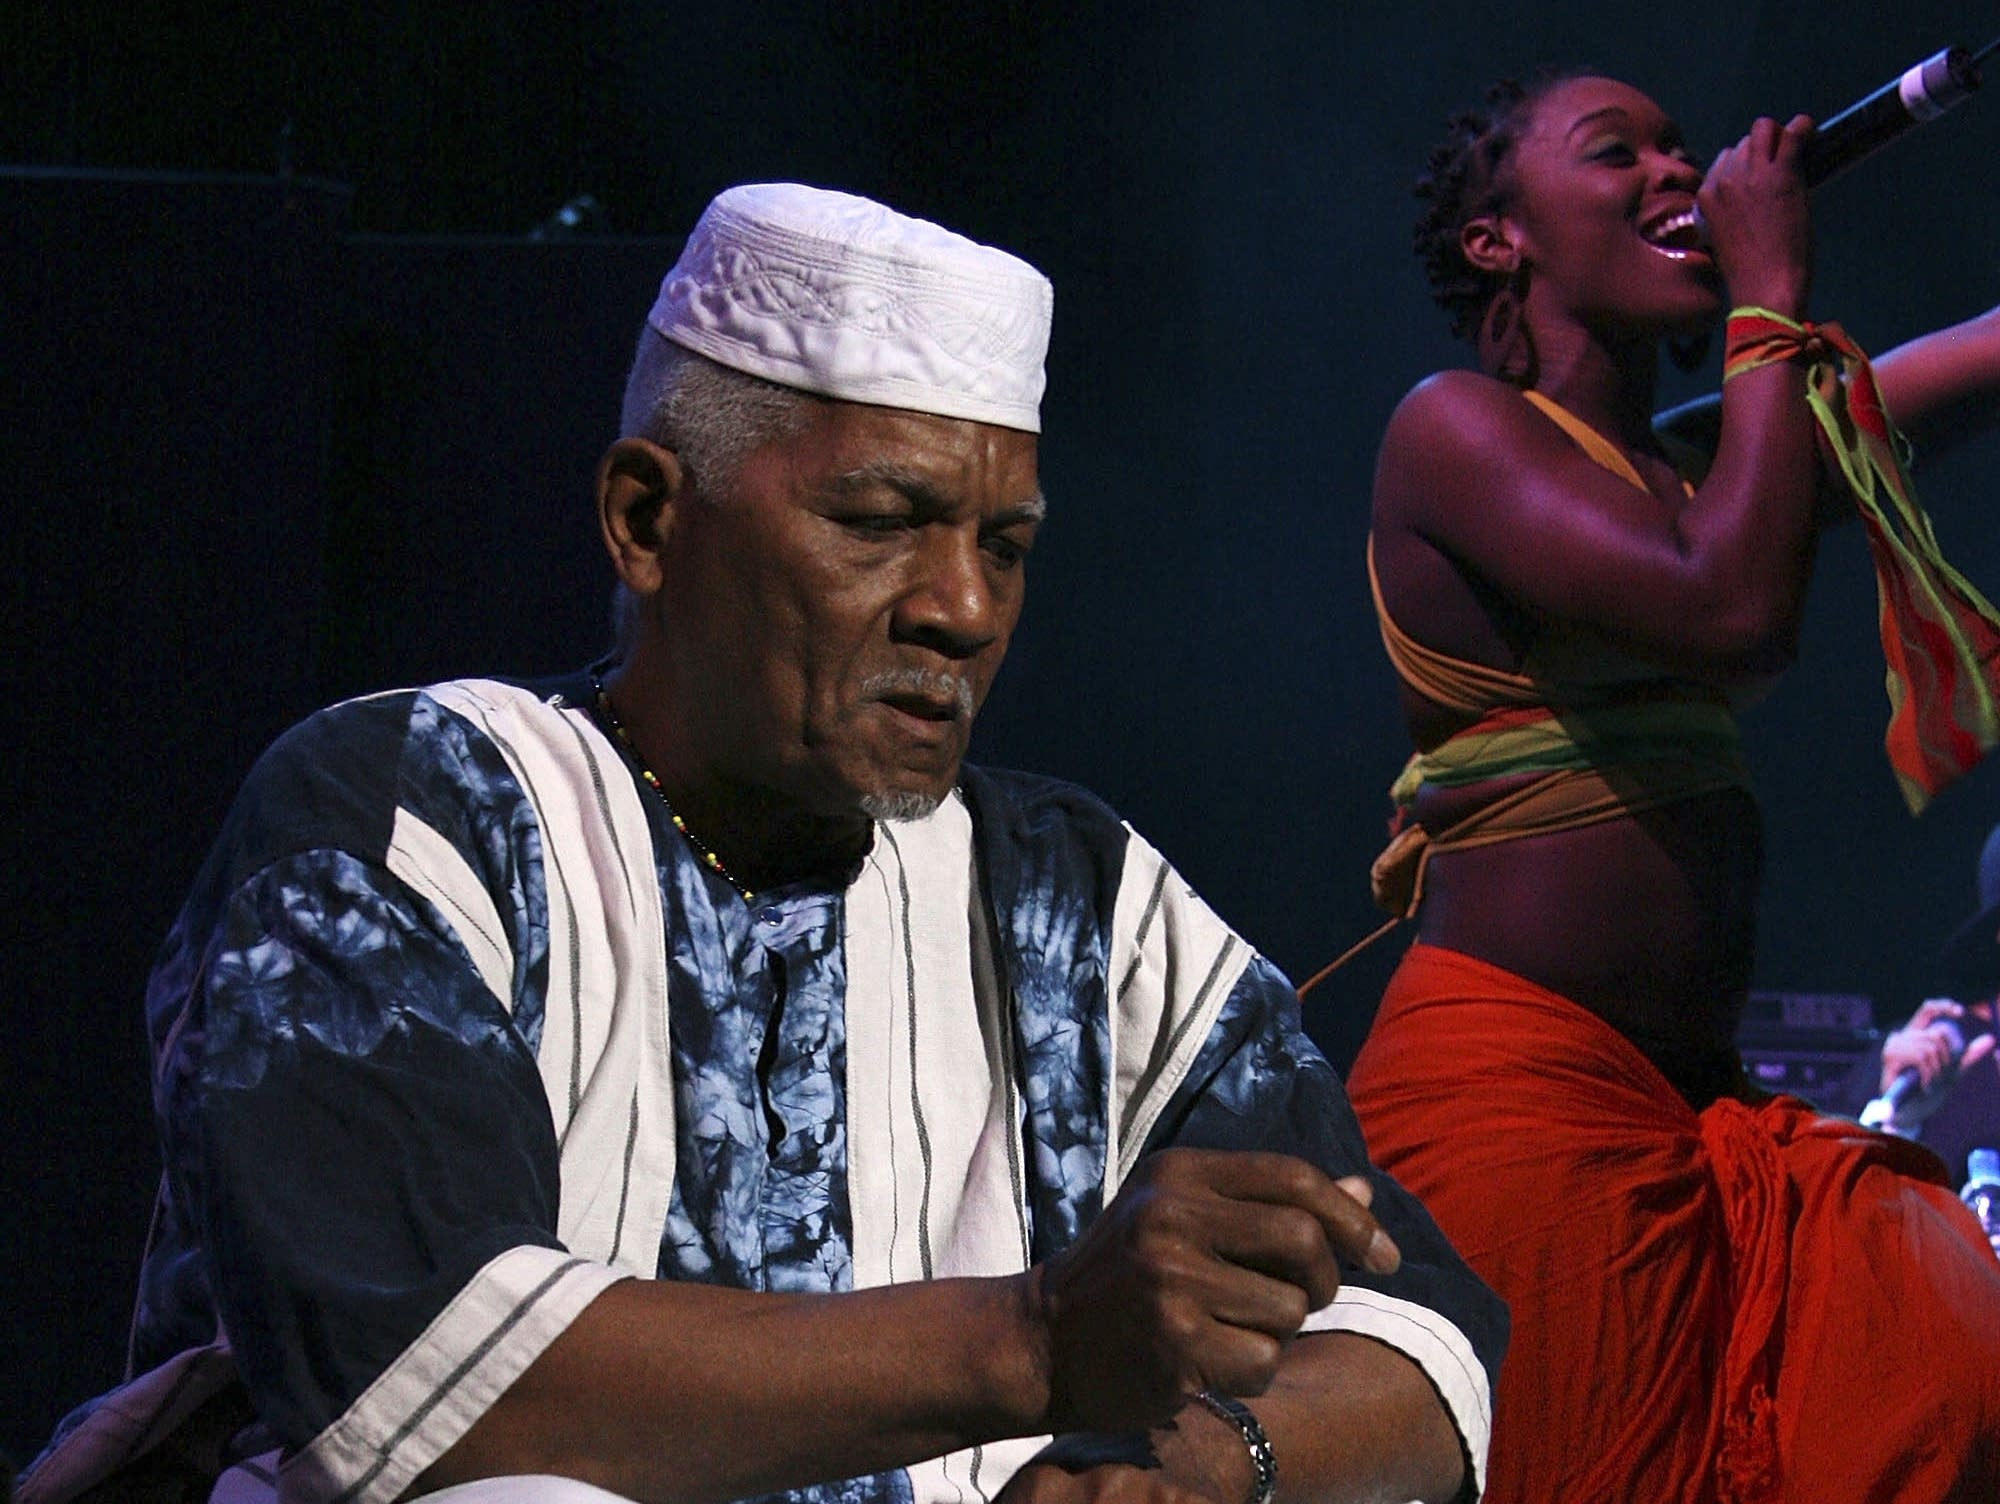 Baba Oje on stage with Arrested Development in 2007.